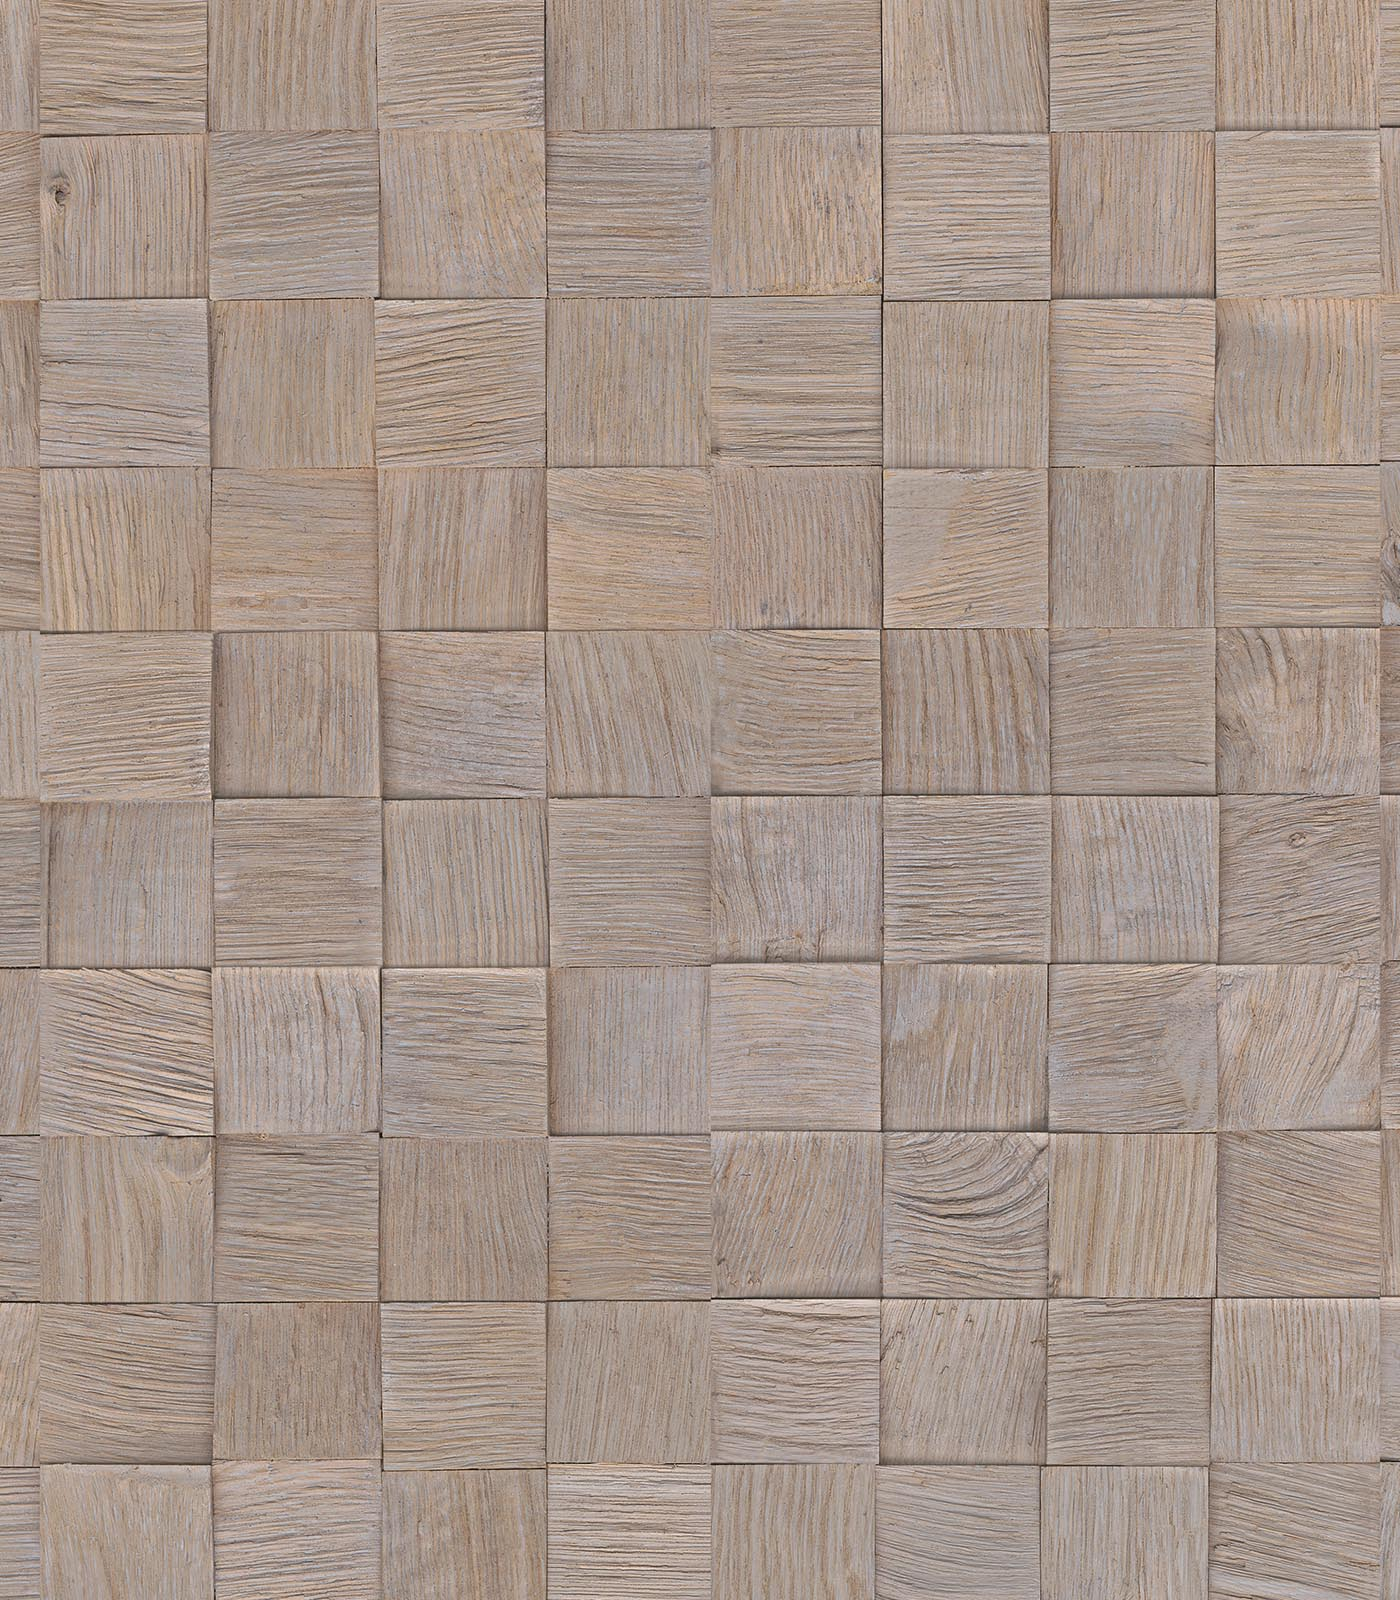 Orion-wall panneling-European Oak-flat